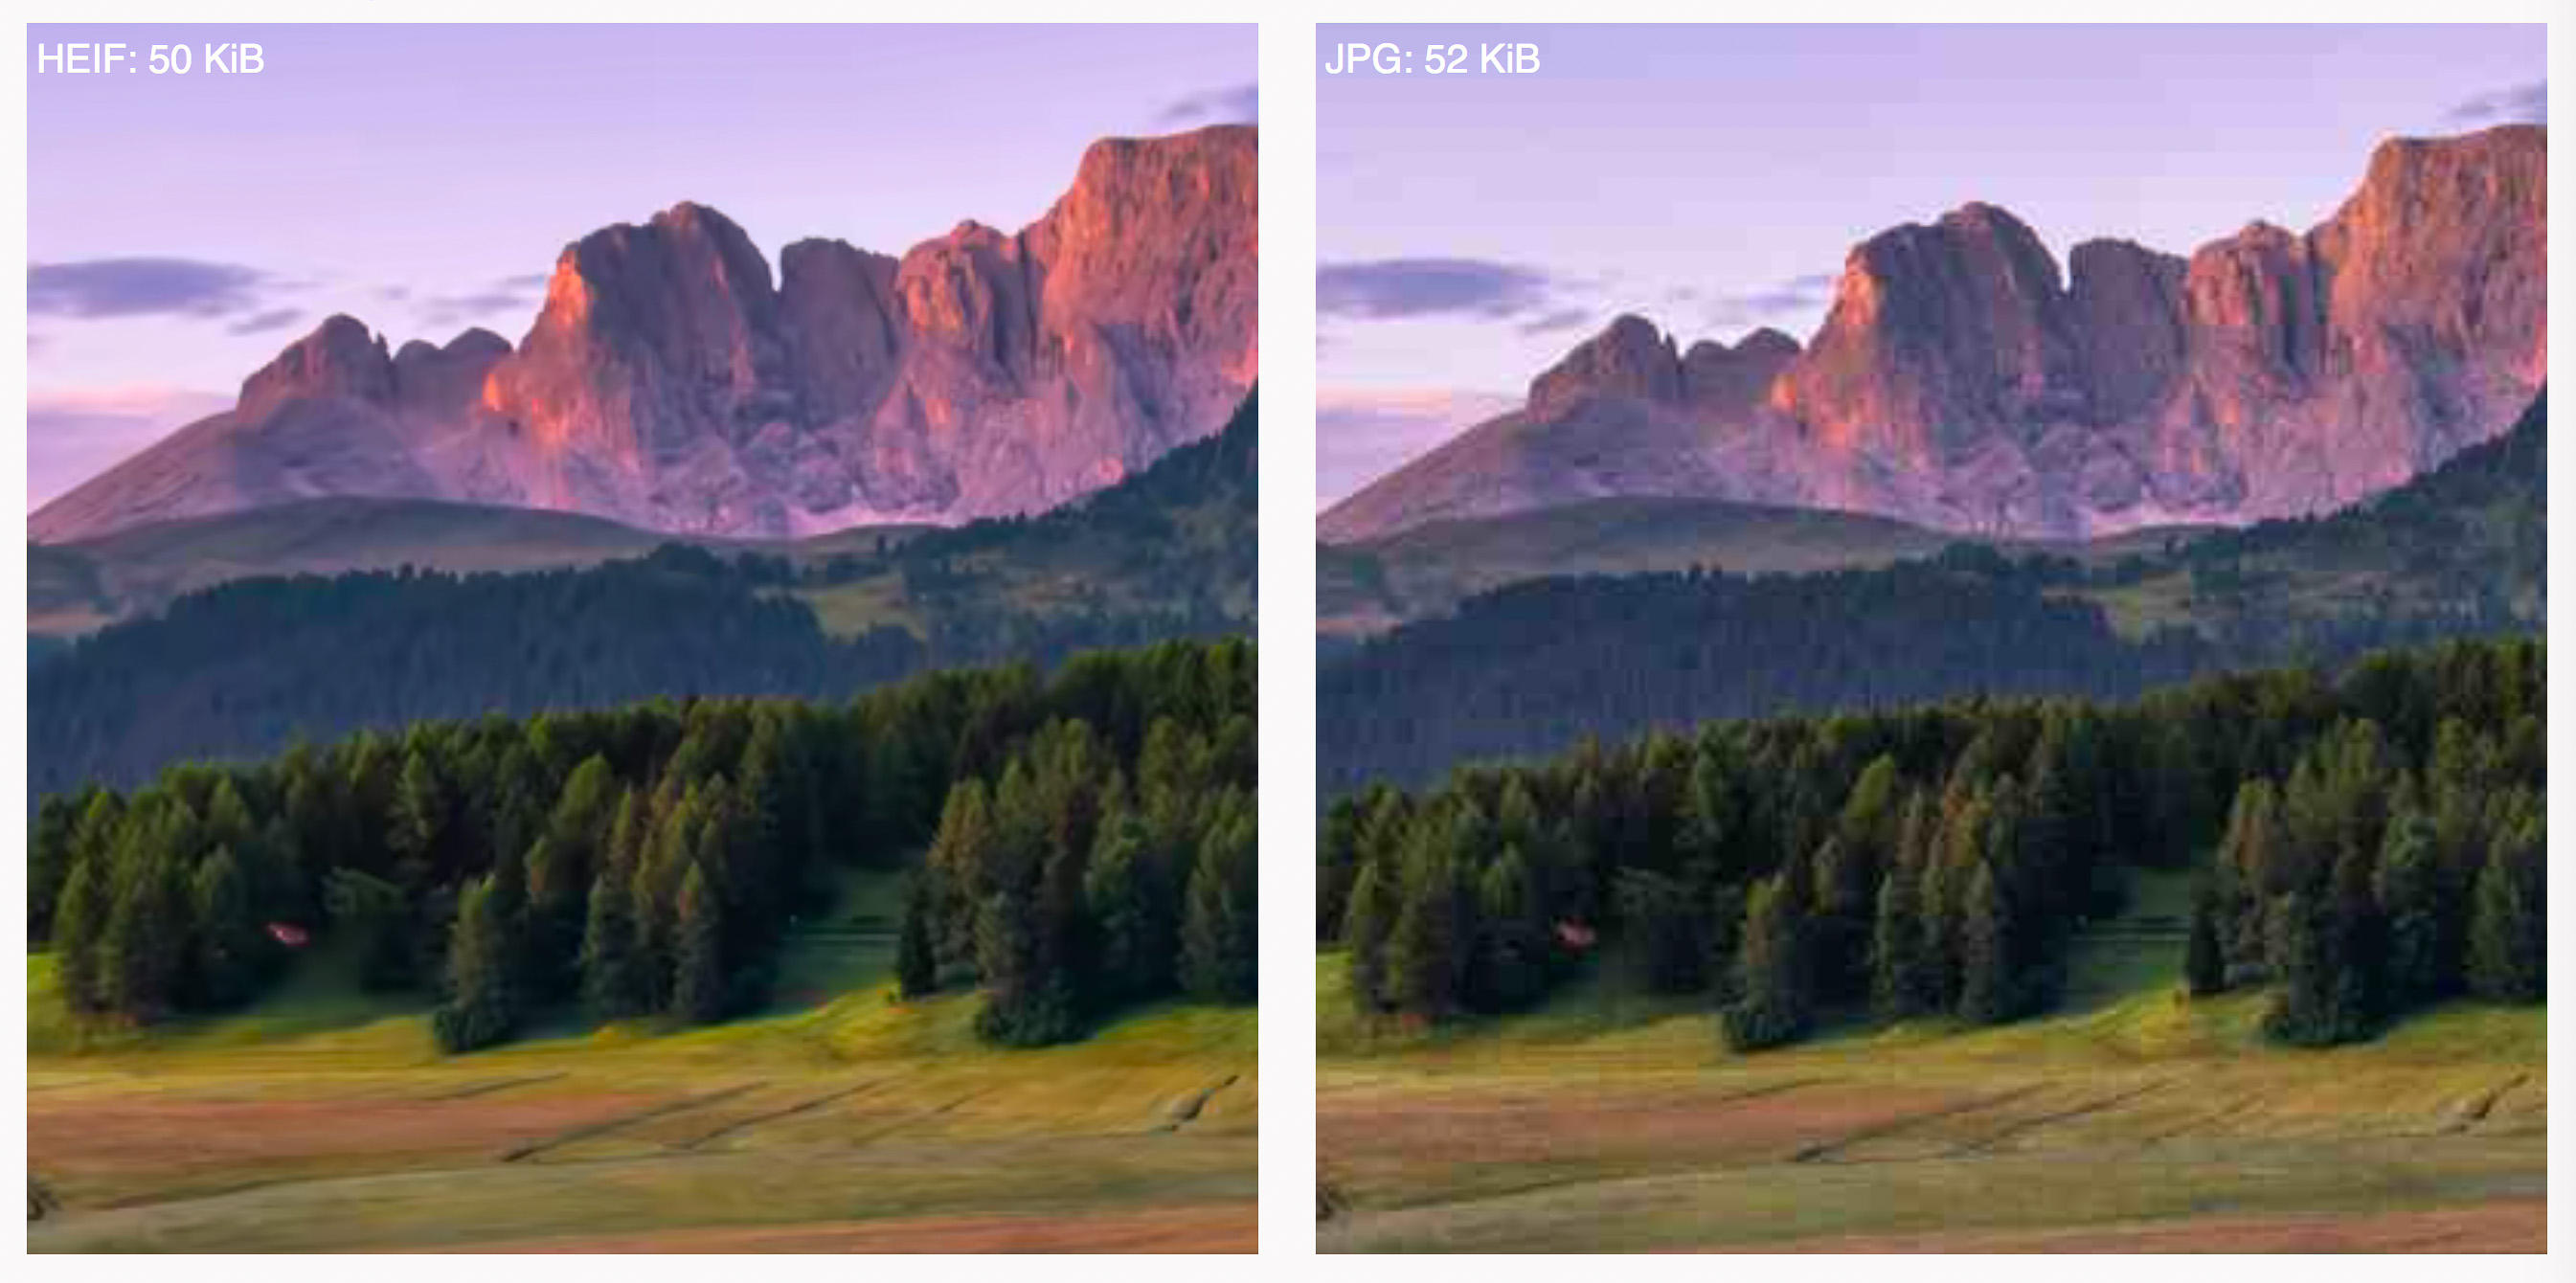 These cropped-in views of a larger image show how HEIF, left, offers richer colors and fewer speckly artifacts near high-contrast borders compared to a JPEG of about the same size.